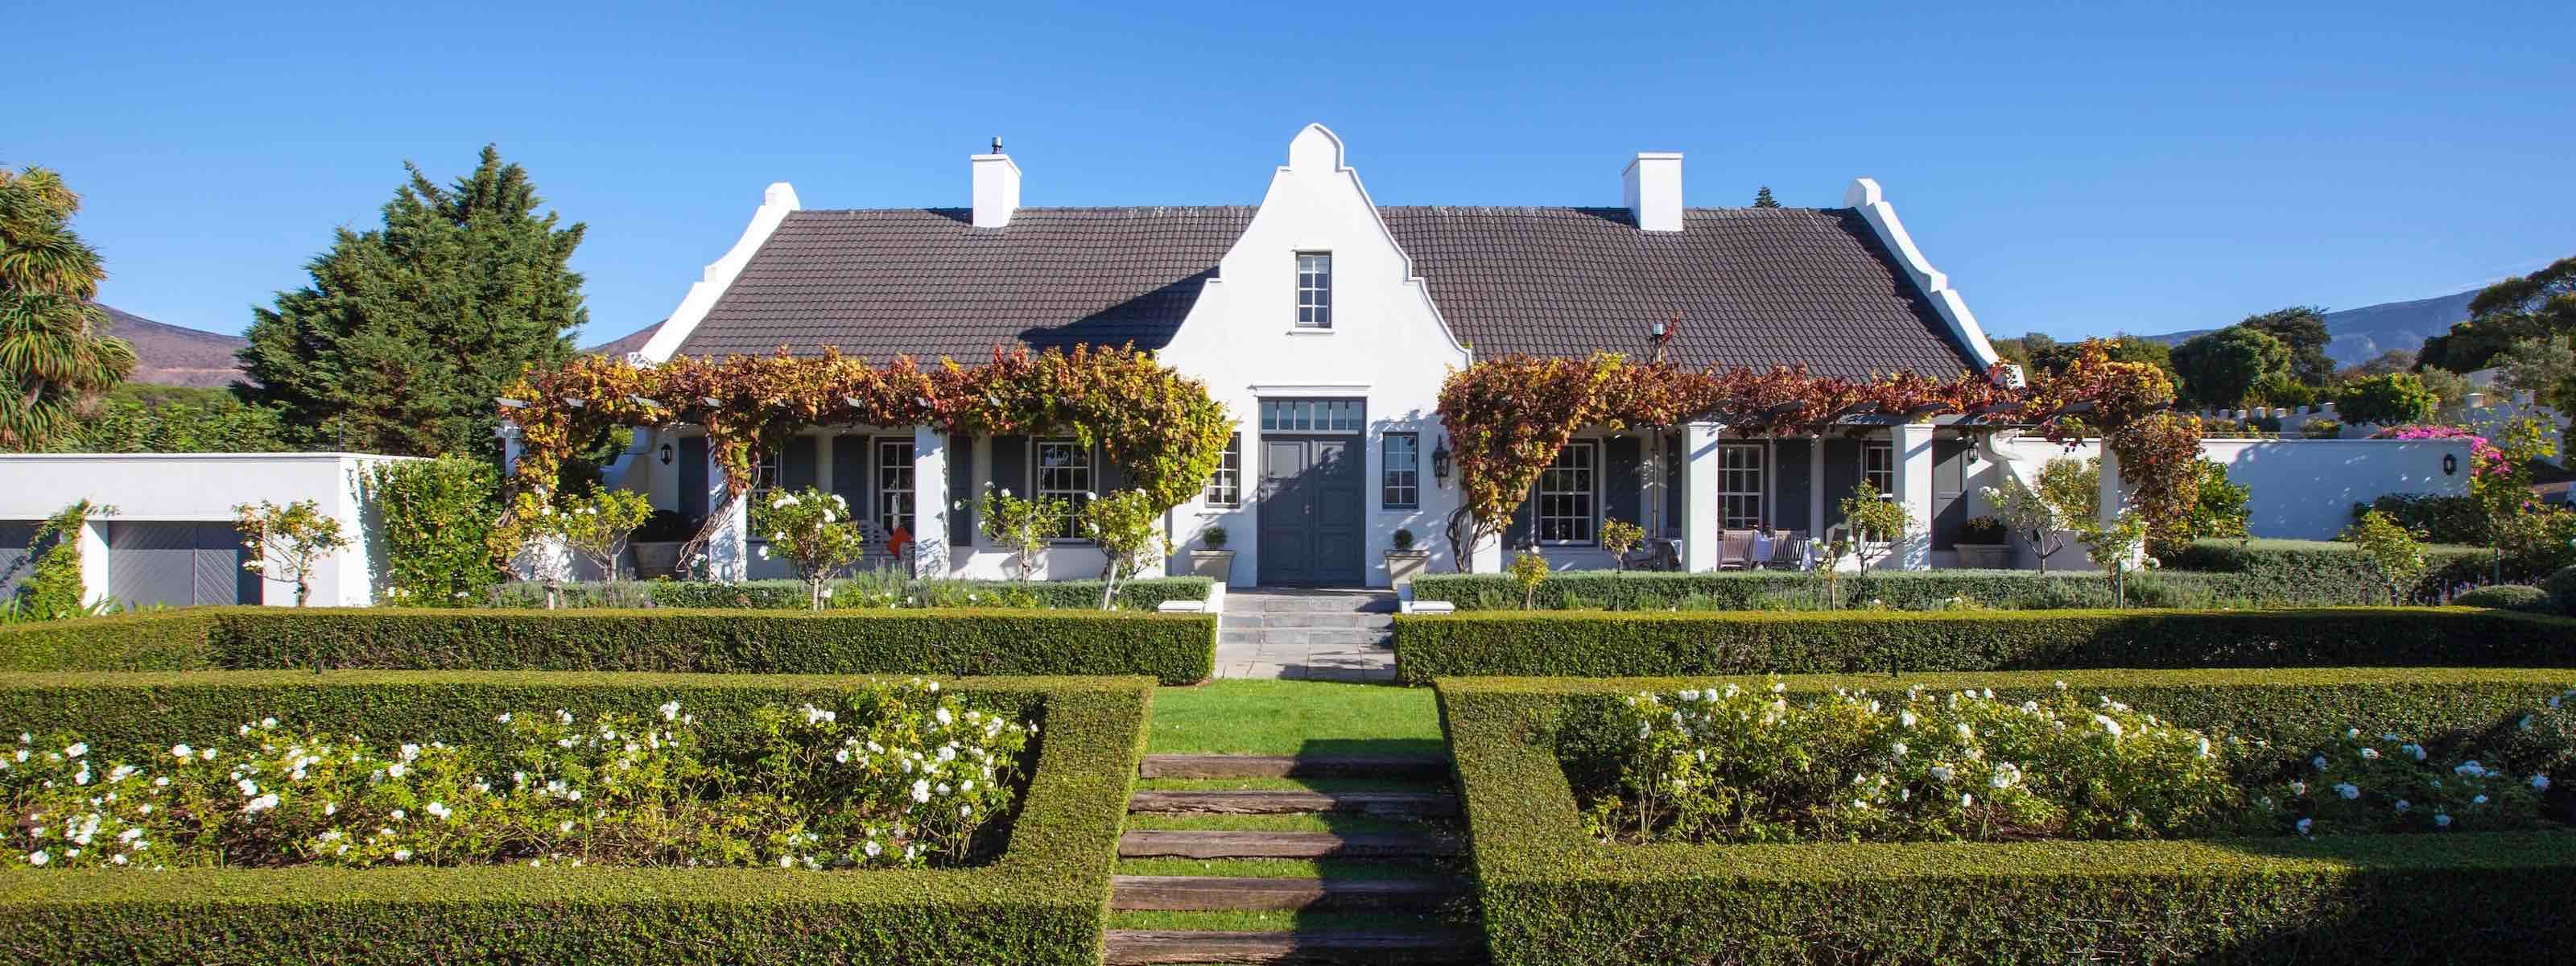 14 ON KLEIN CONSTANTIA is a 5 star Guest House in close proximity to Cape Town. 1